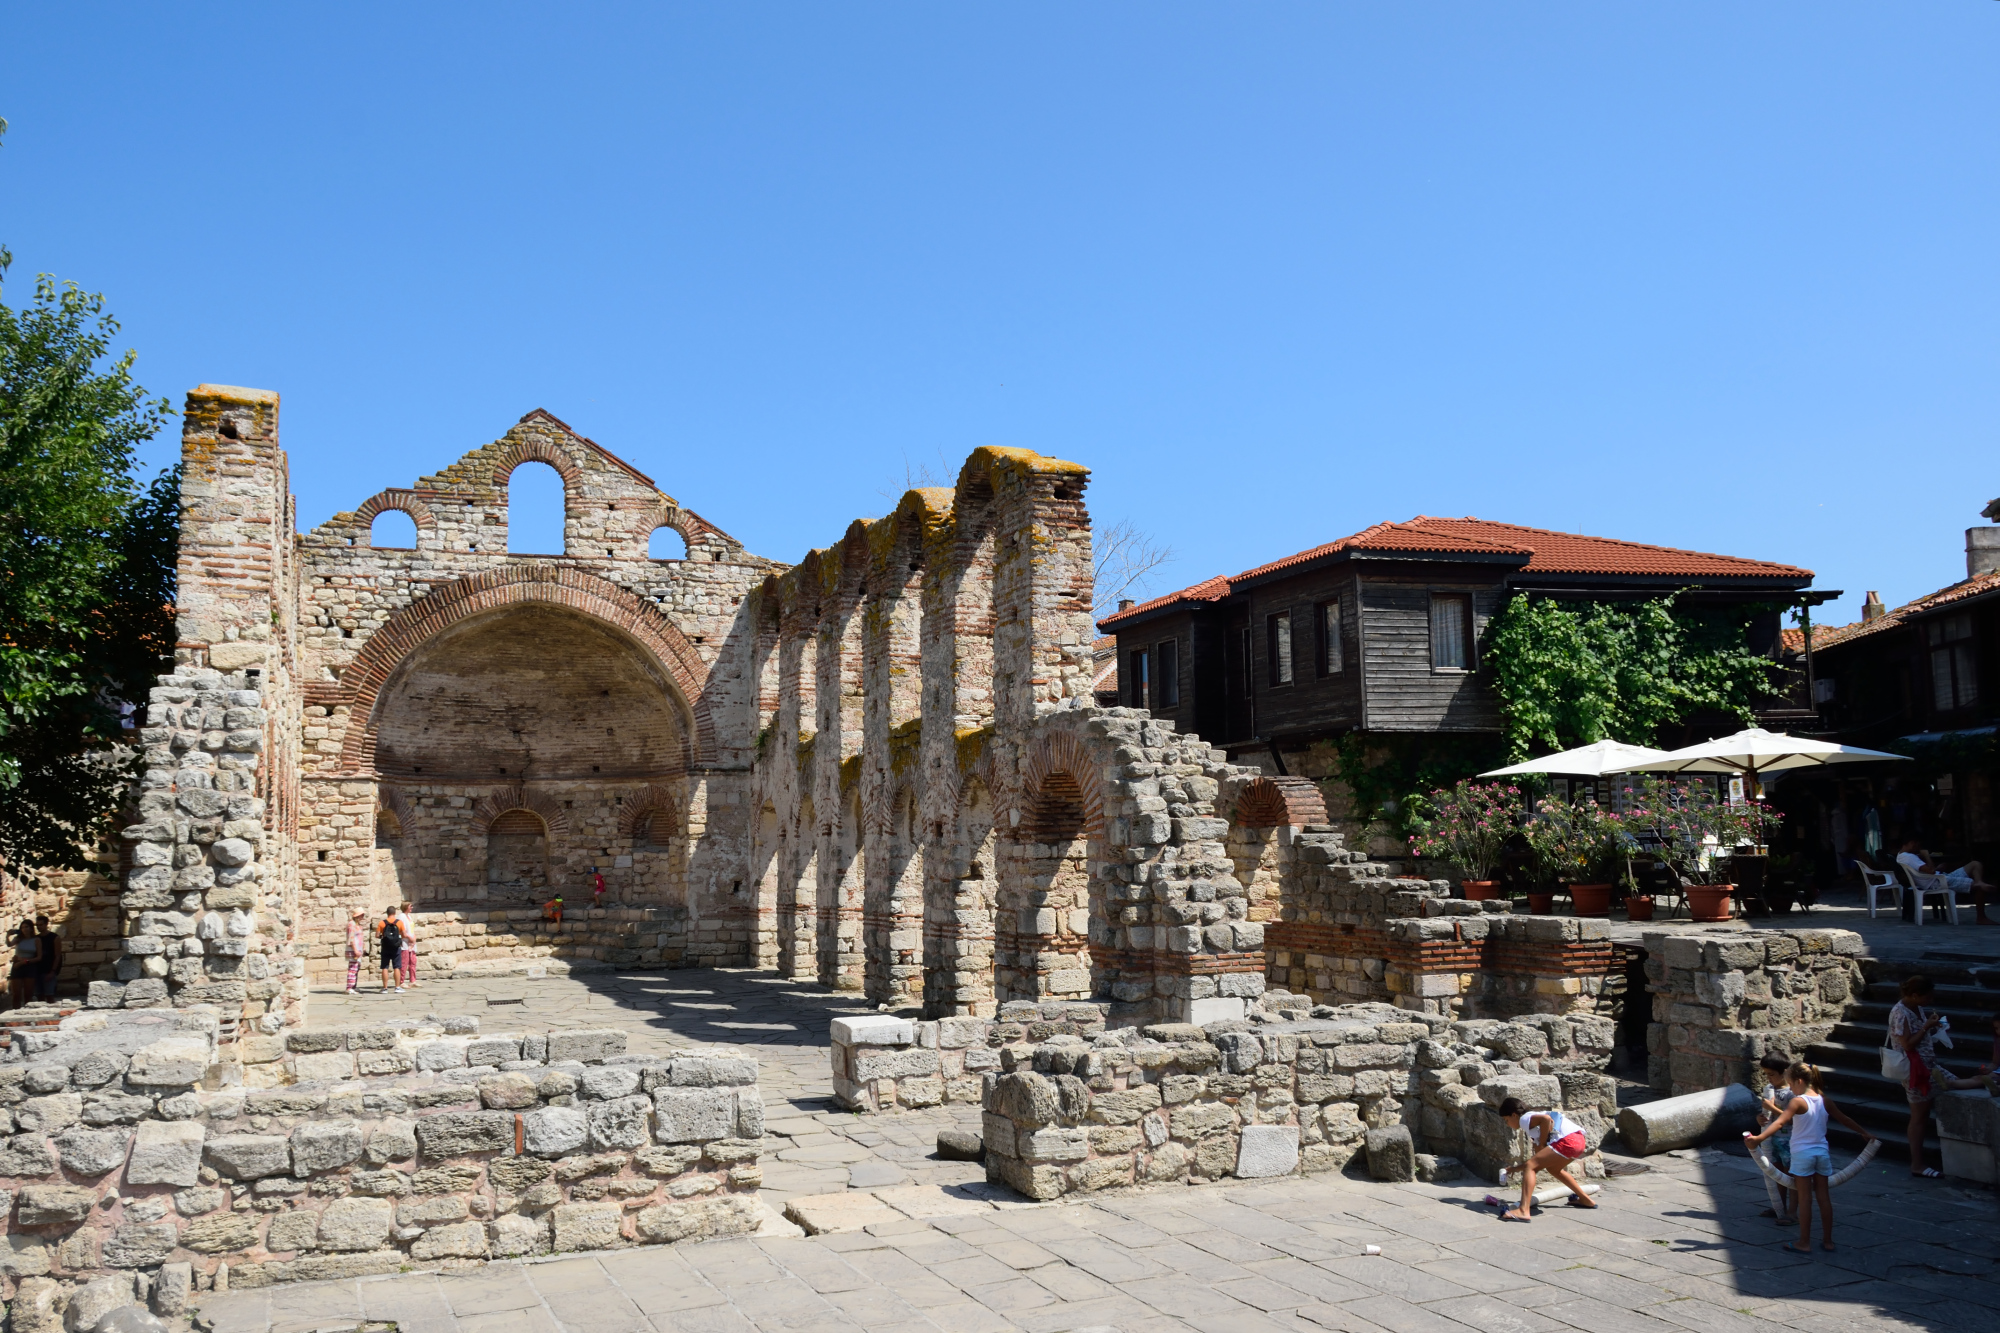 Orthodox church of st. Sophia - Nessebar